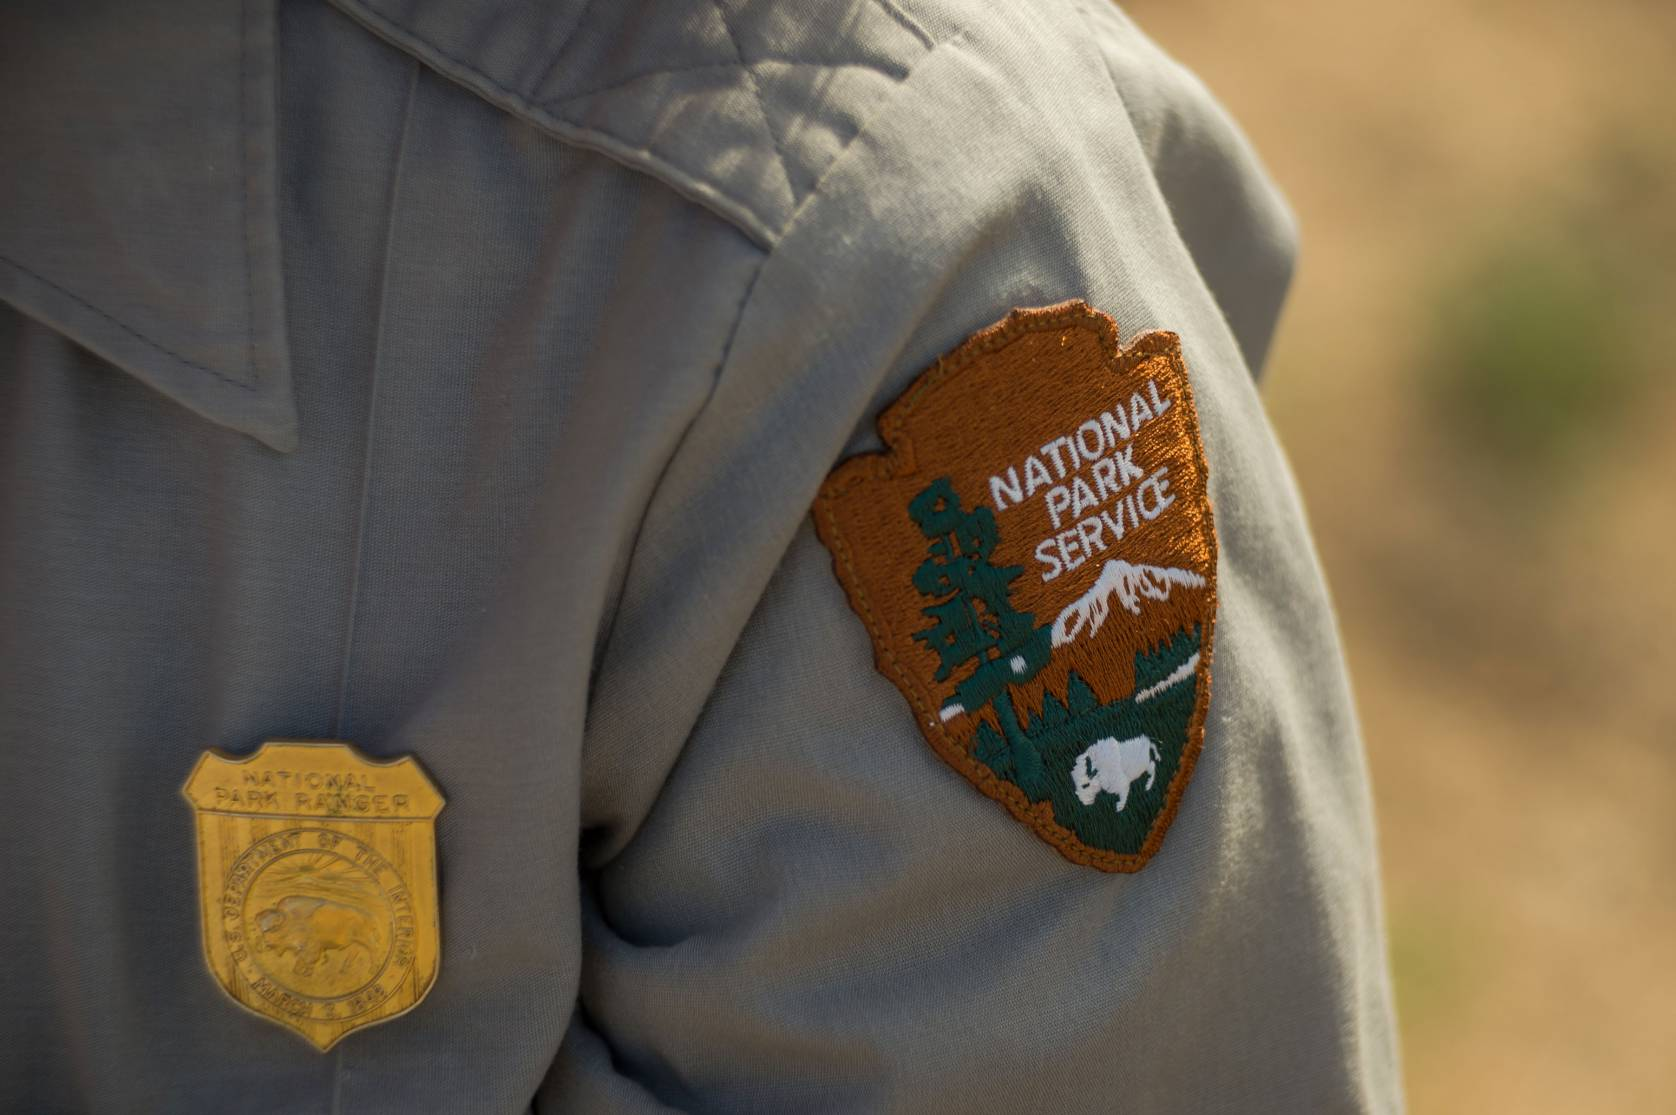 National Park Service ranger badge